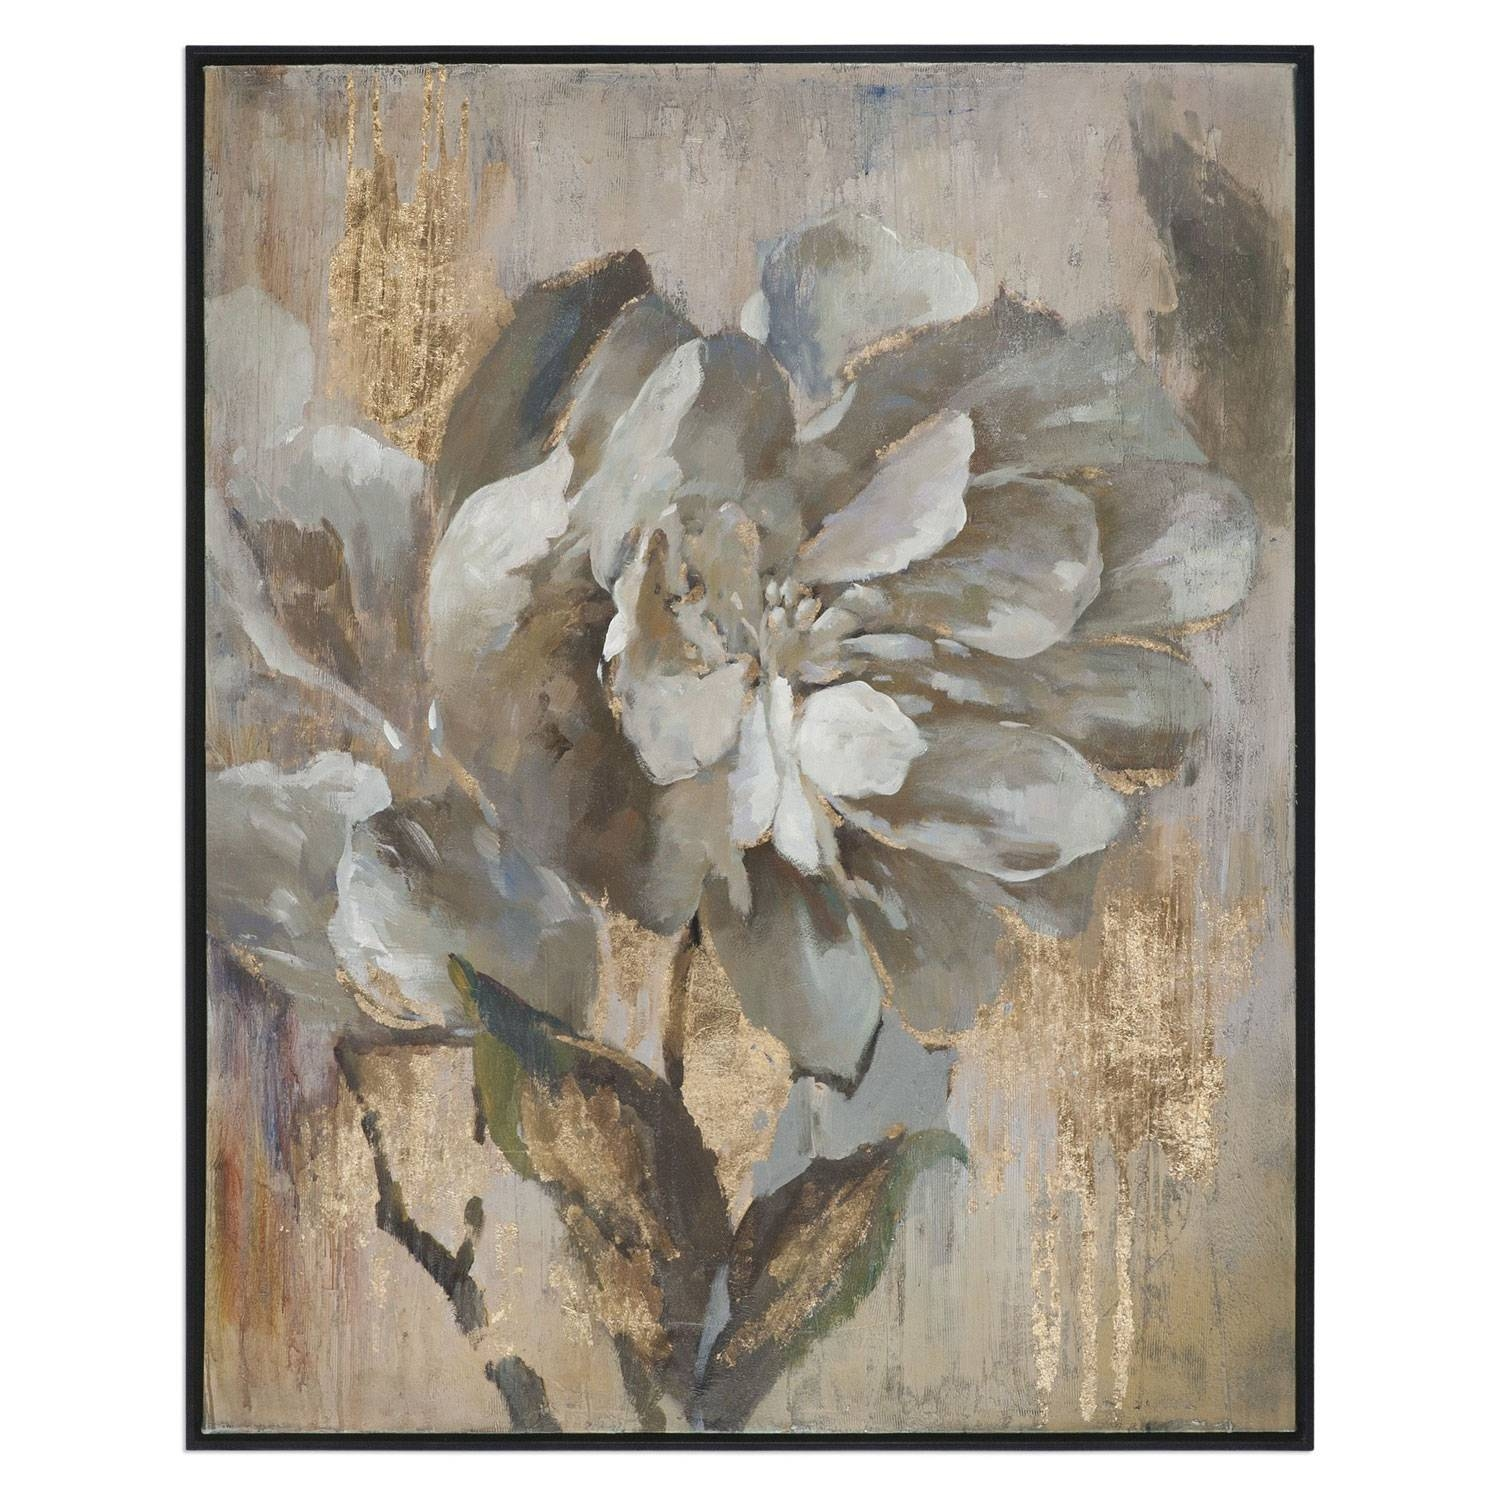 Dazzlinggrace Feyock: 41 X 51 Inch Wall Art Uttermost Wall Art Regarding Most Up To Date Uttermost Metal Wall Art (View 14 of 20)